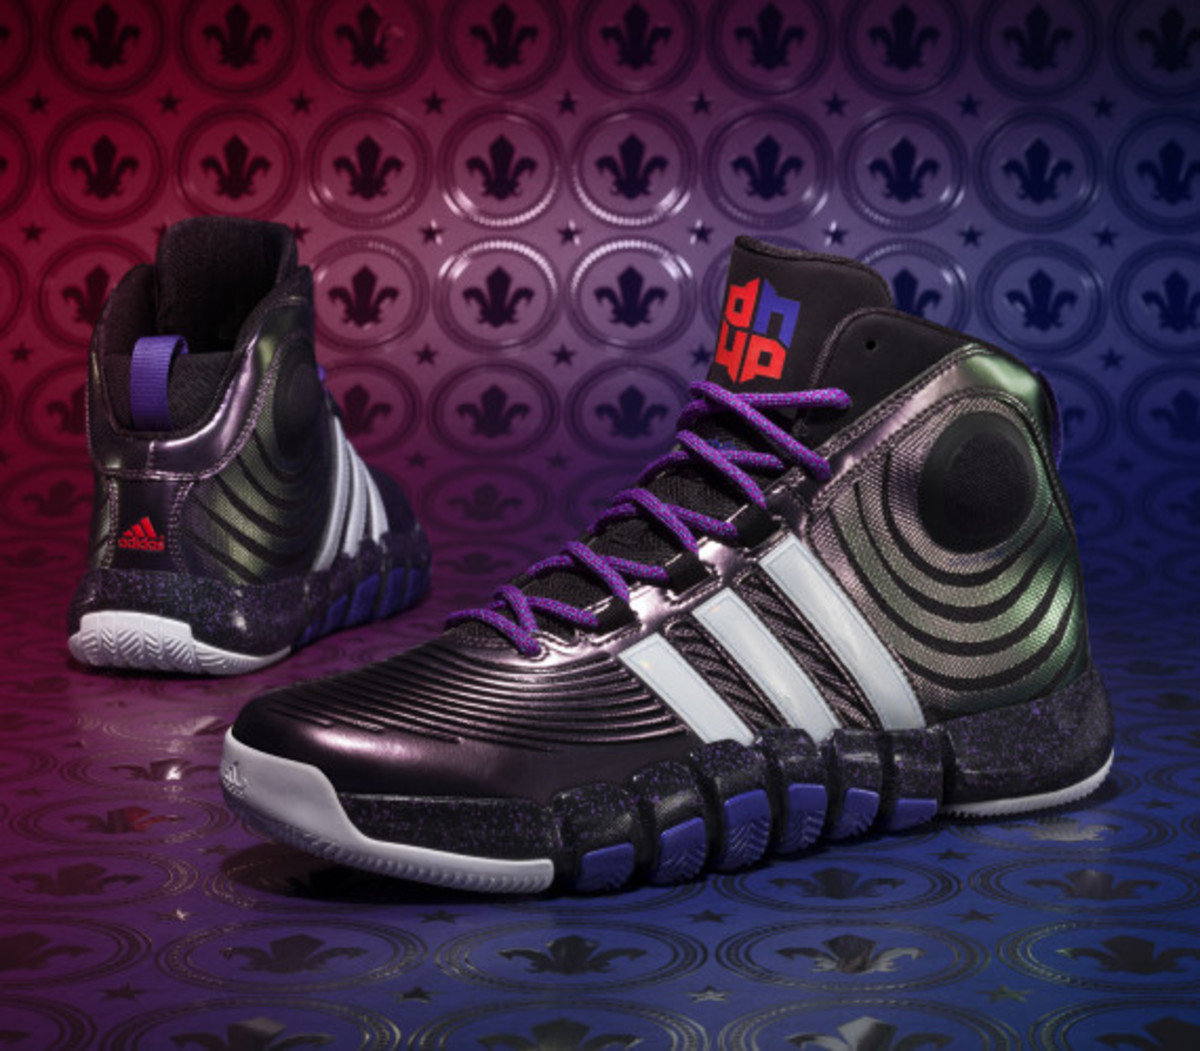 adidas Basketball Dwight Howard 4 - NBA All-Star Game Edition - 3